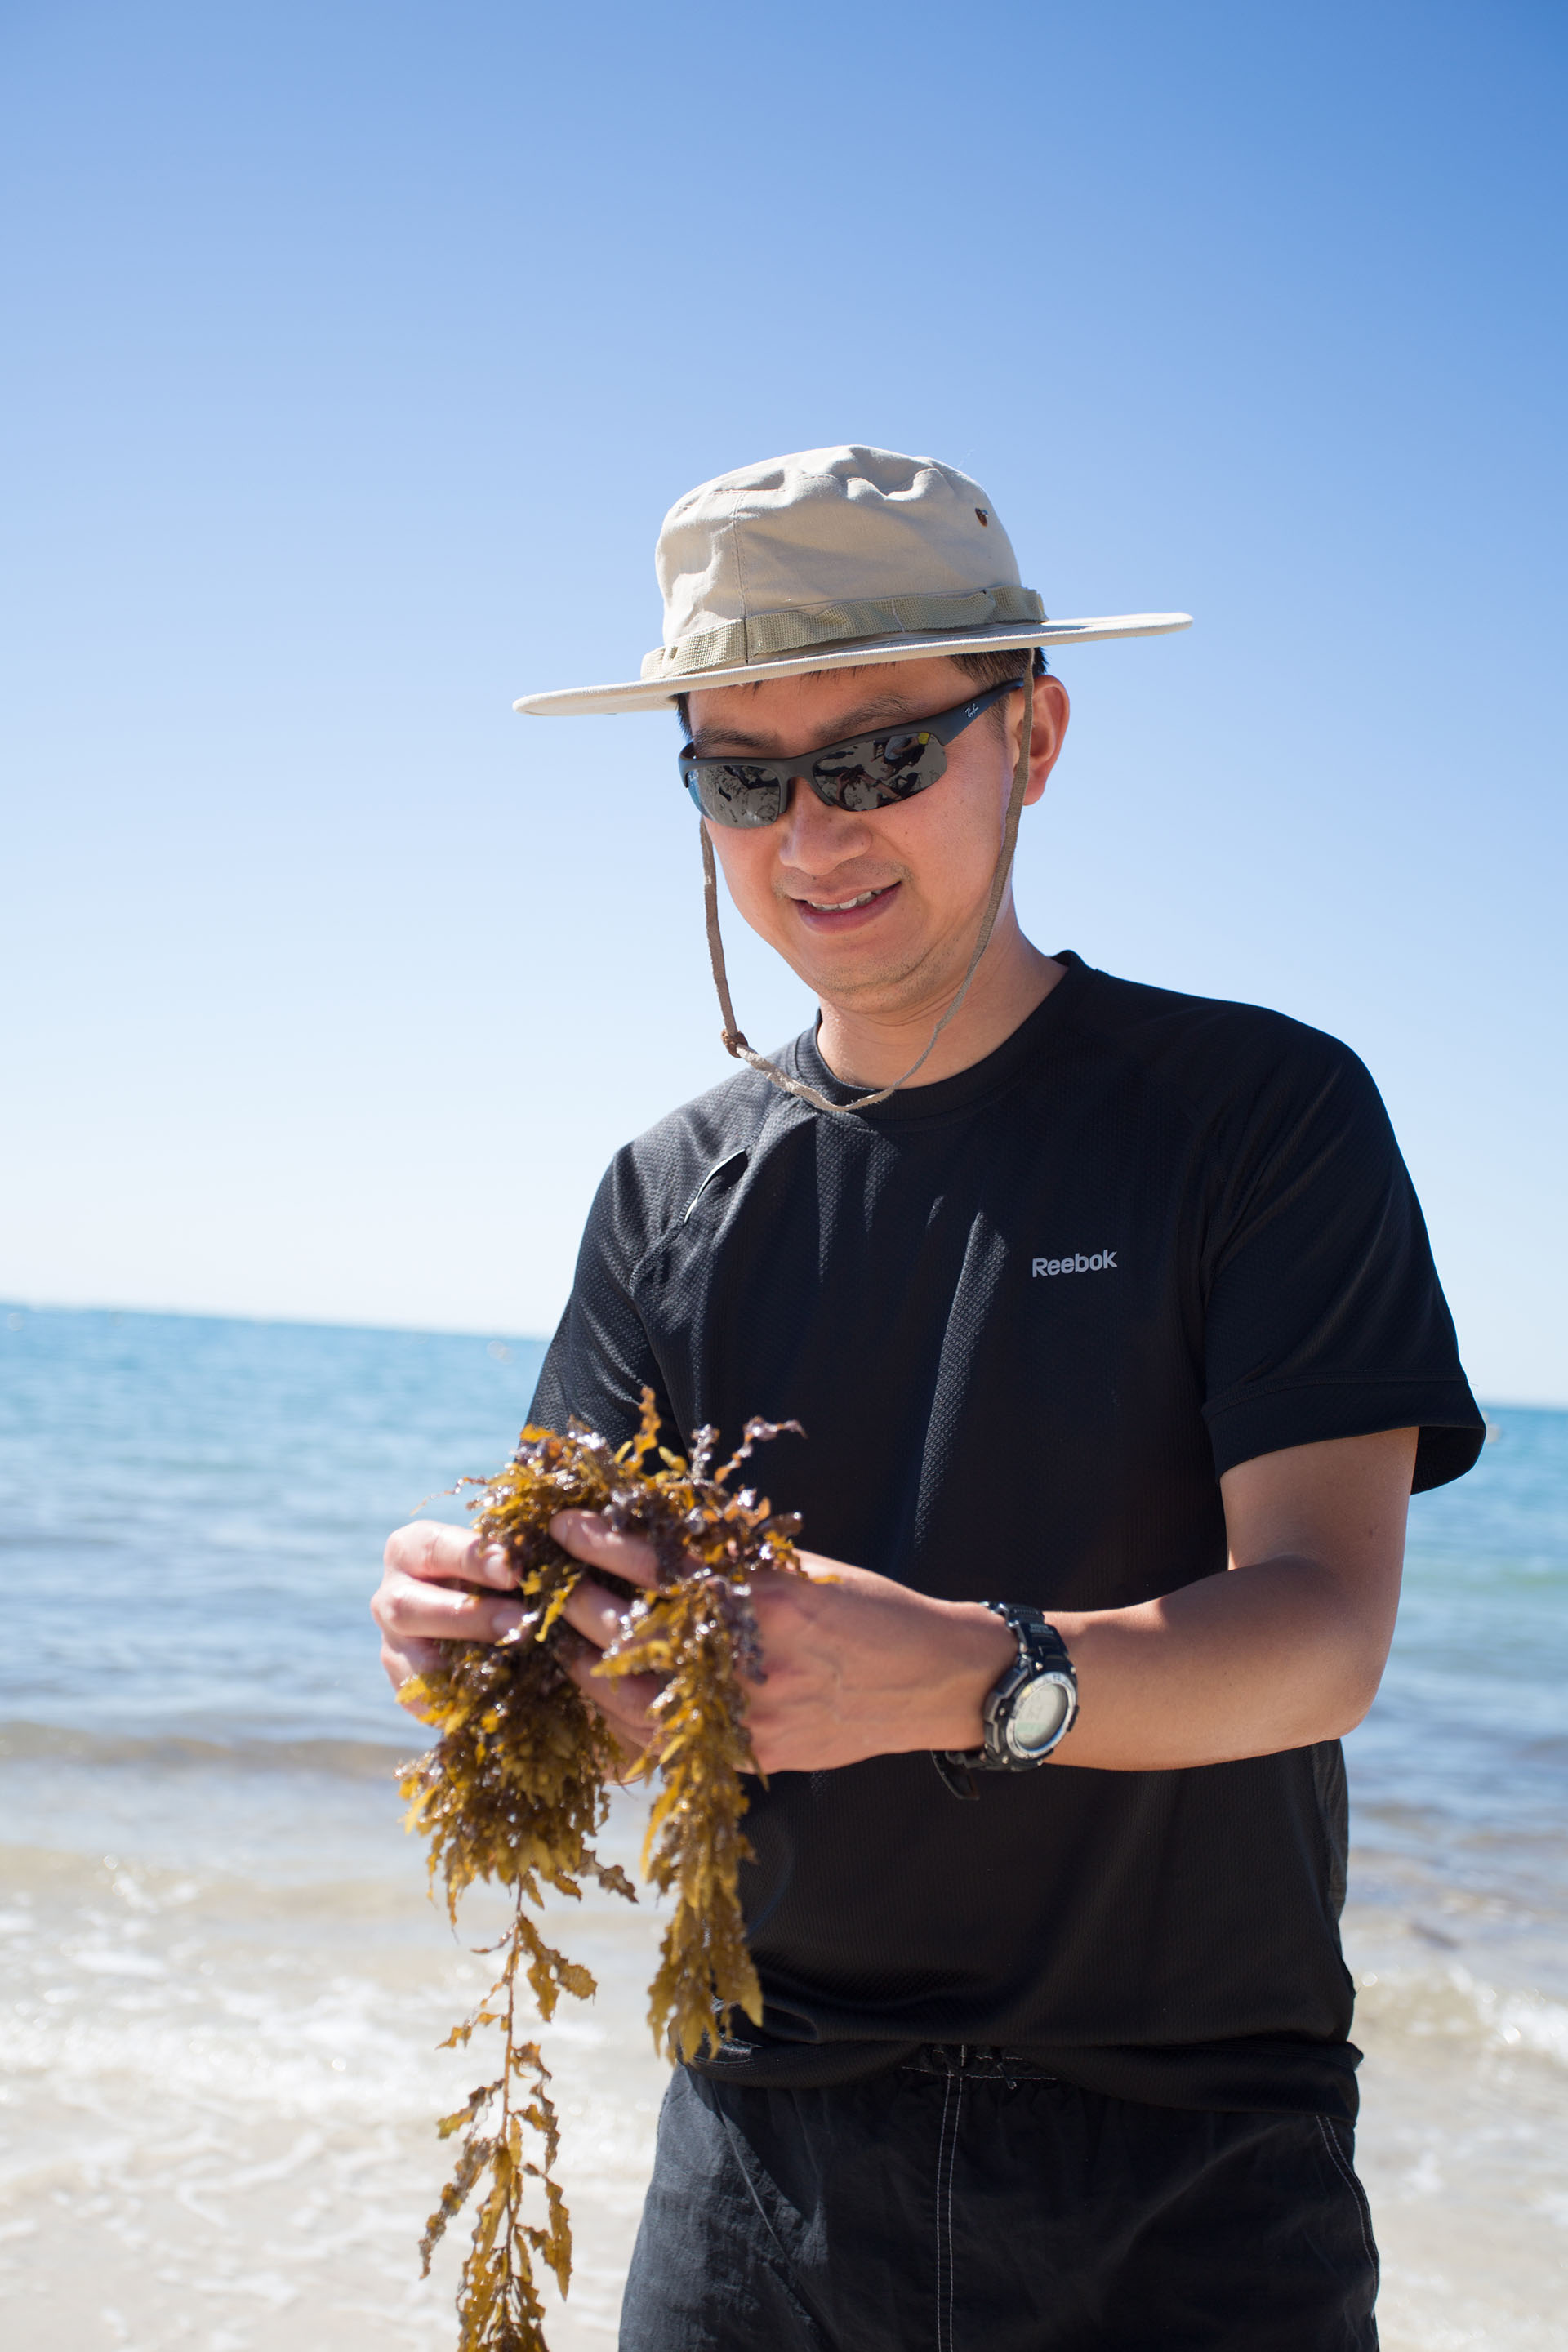 John holding a bunch of seagrasses